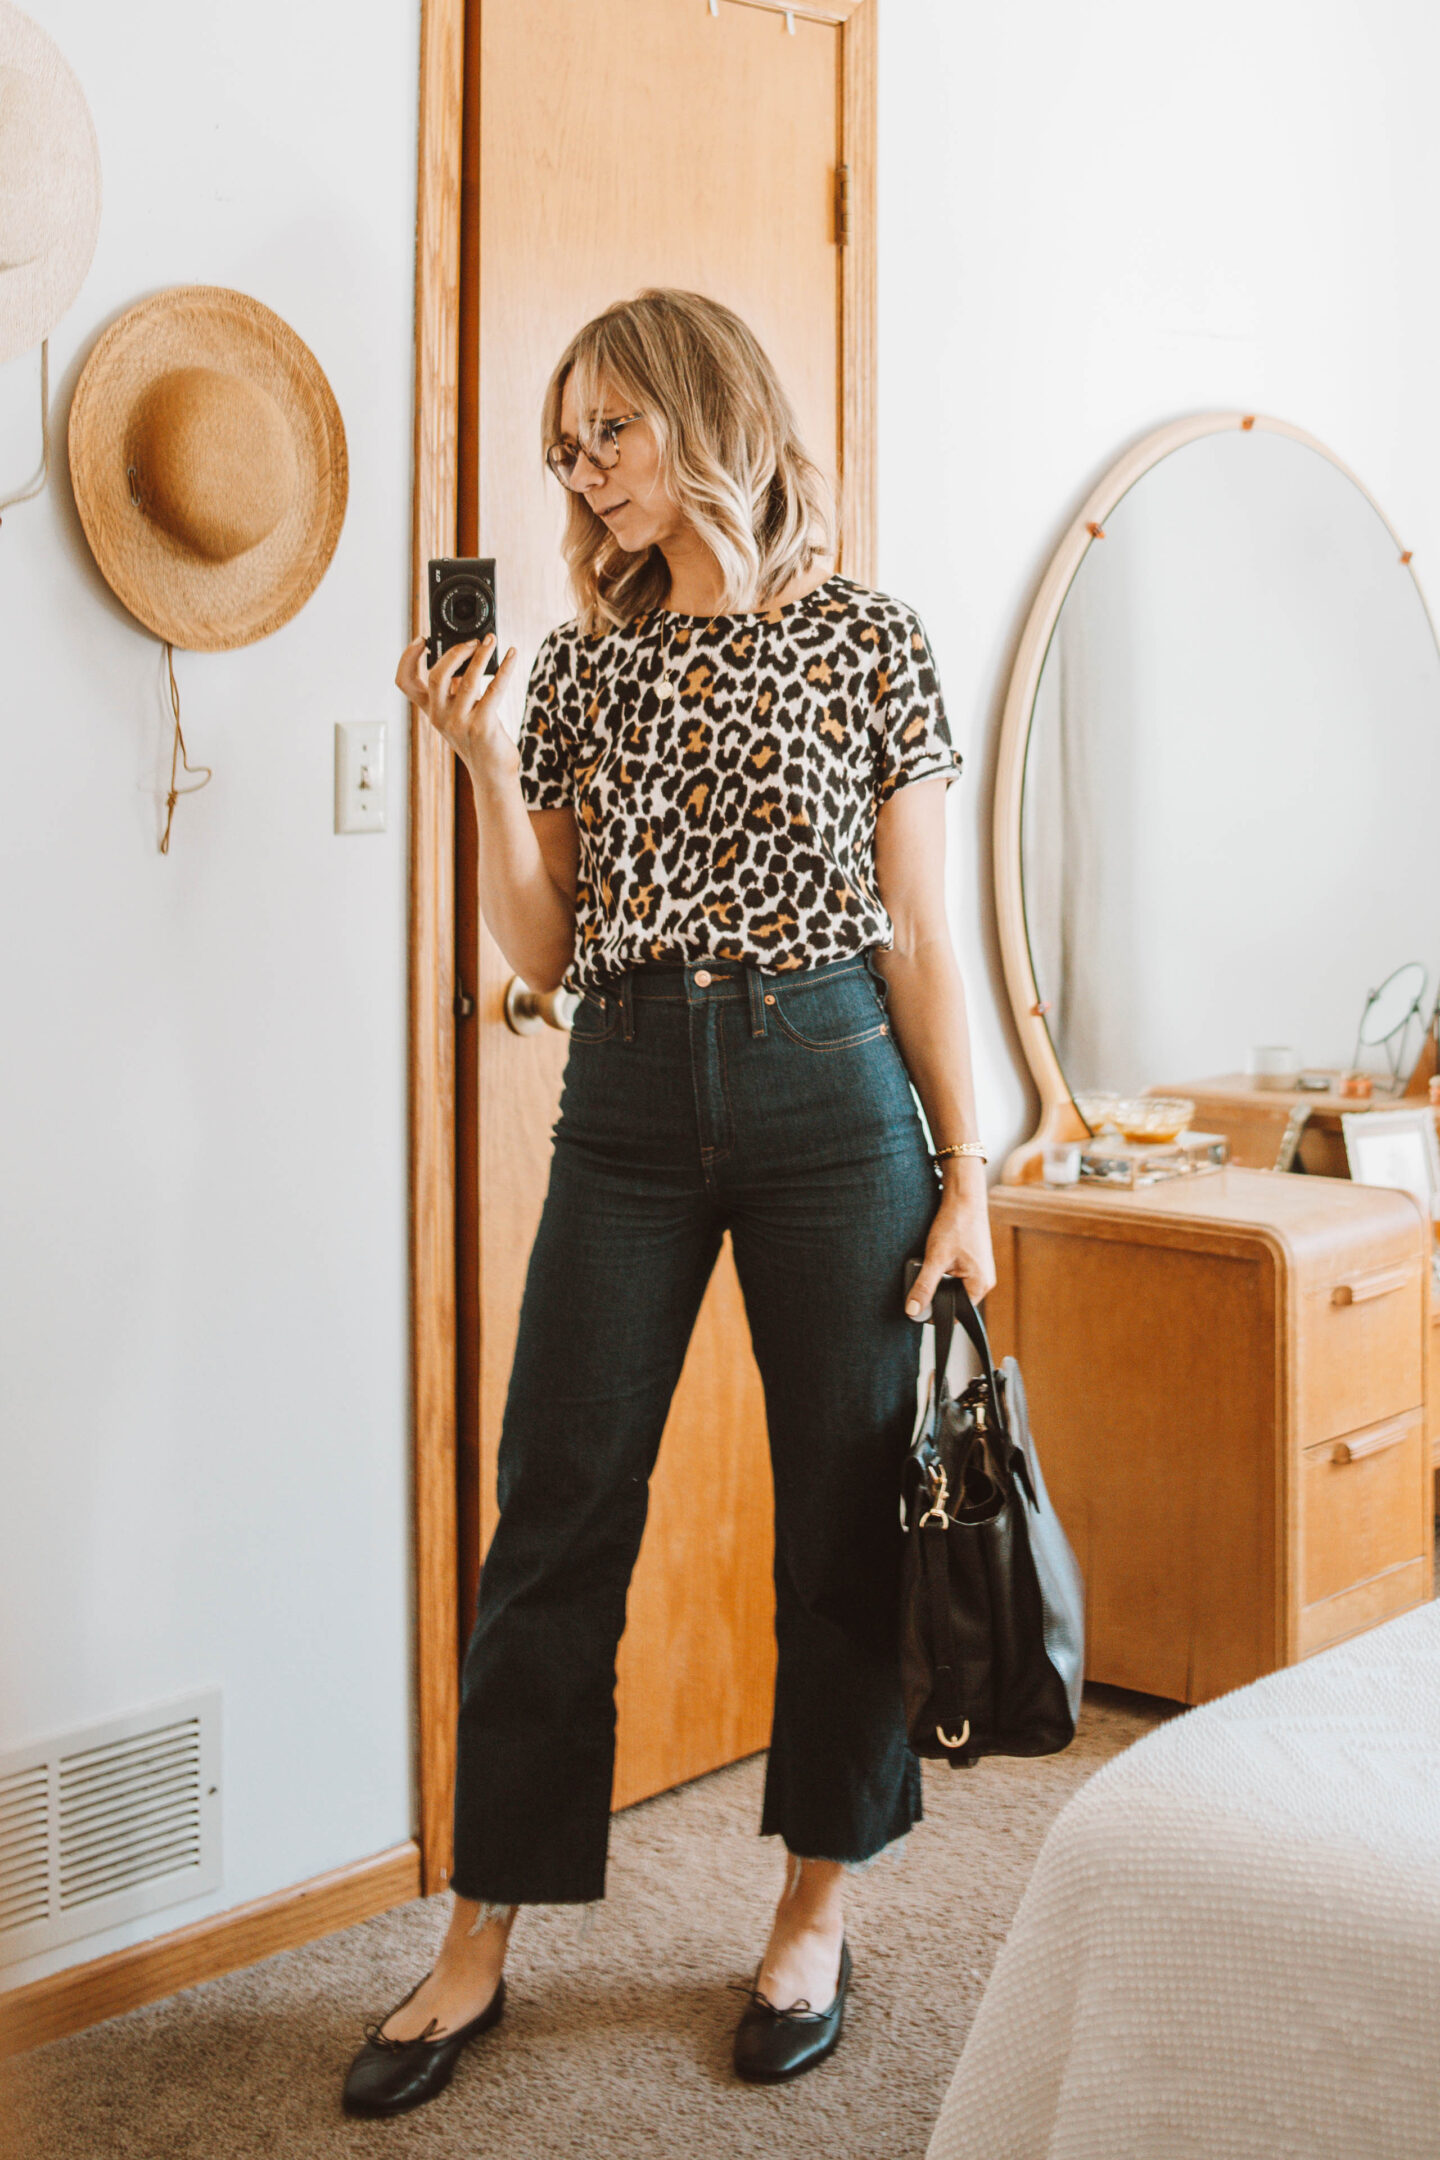 Week of Outfits + 3 Ways to Wear Knee High Boots, Leopard Print Tee